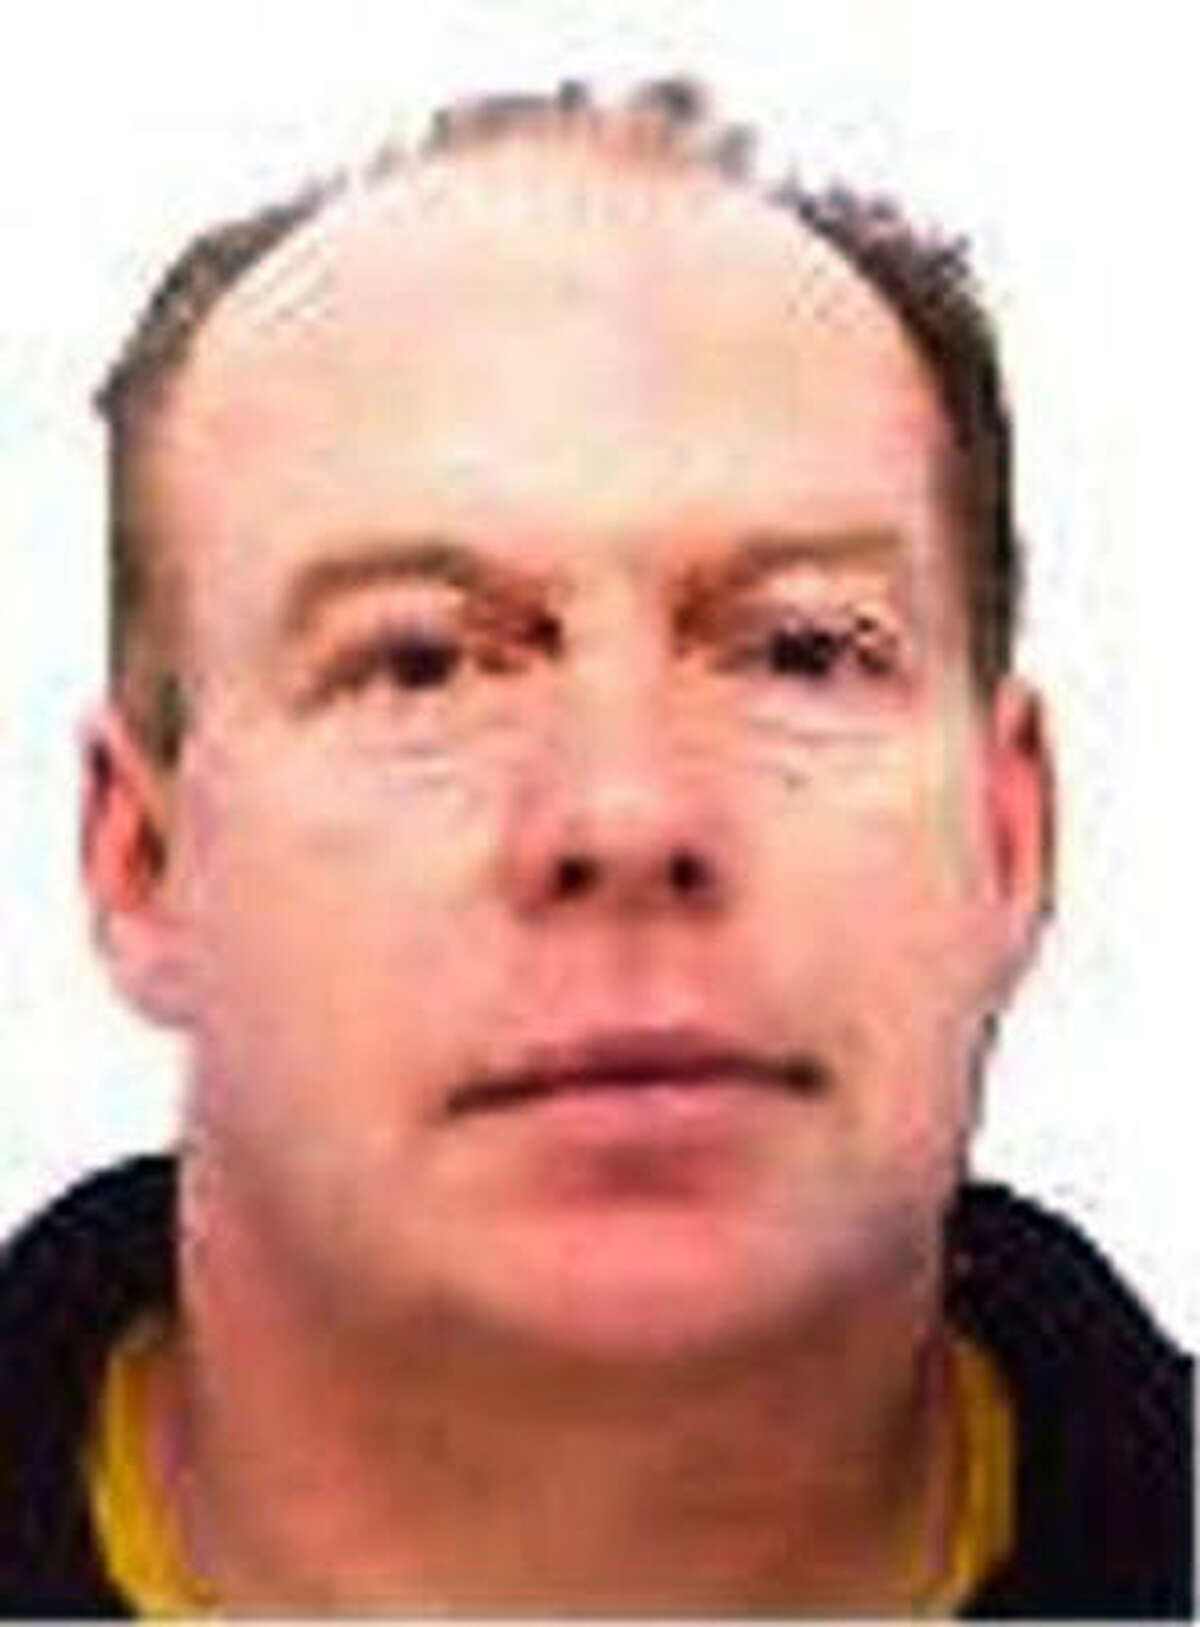 This is a undated handout photo issued by Cumbria Police on June 2, 2010 of Derrick Bird, 52, from Rowrah, northwest England, who police say killed 12 people in a shooting spree.